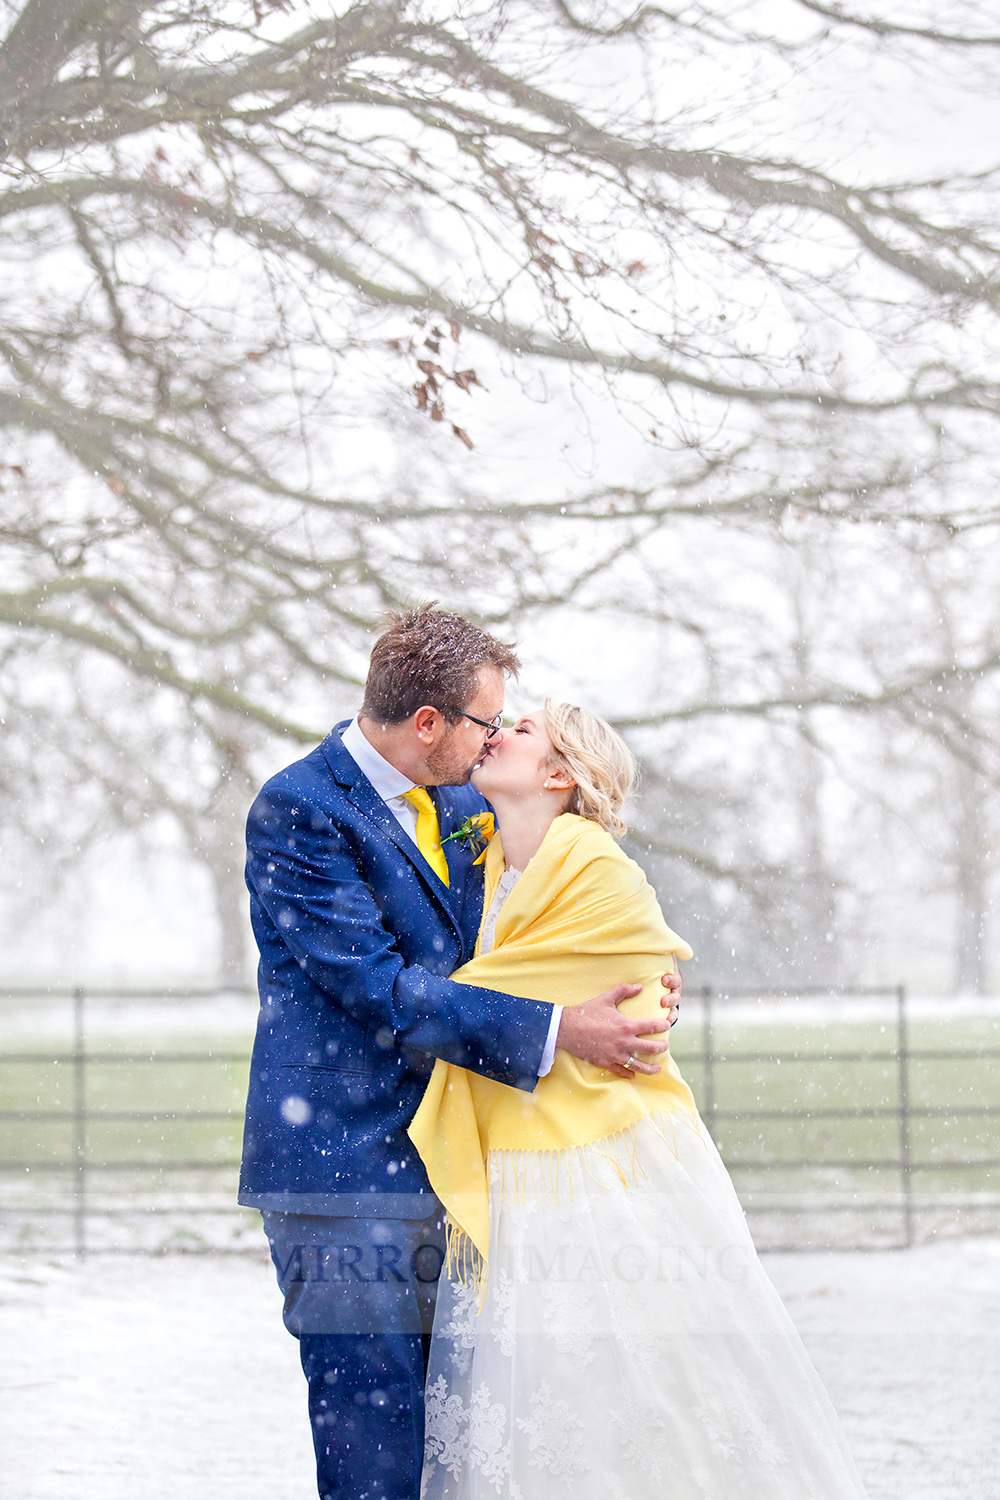 notts wedding photographer 37.jpg